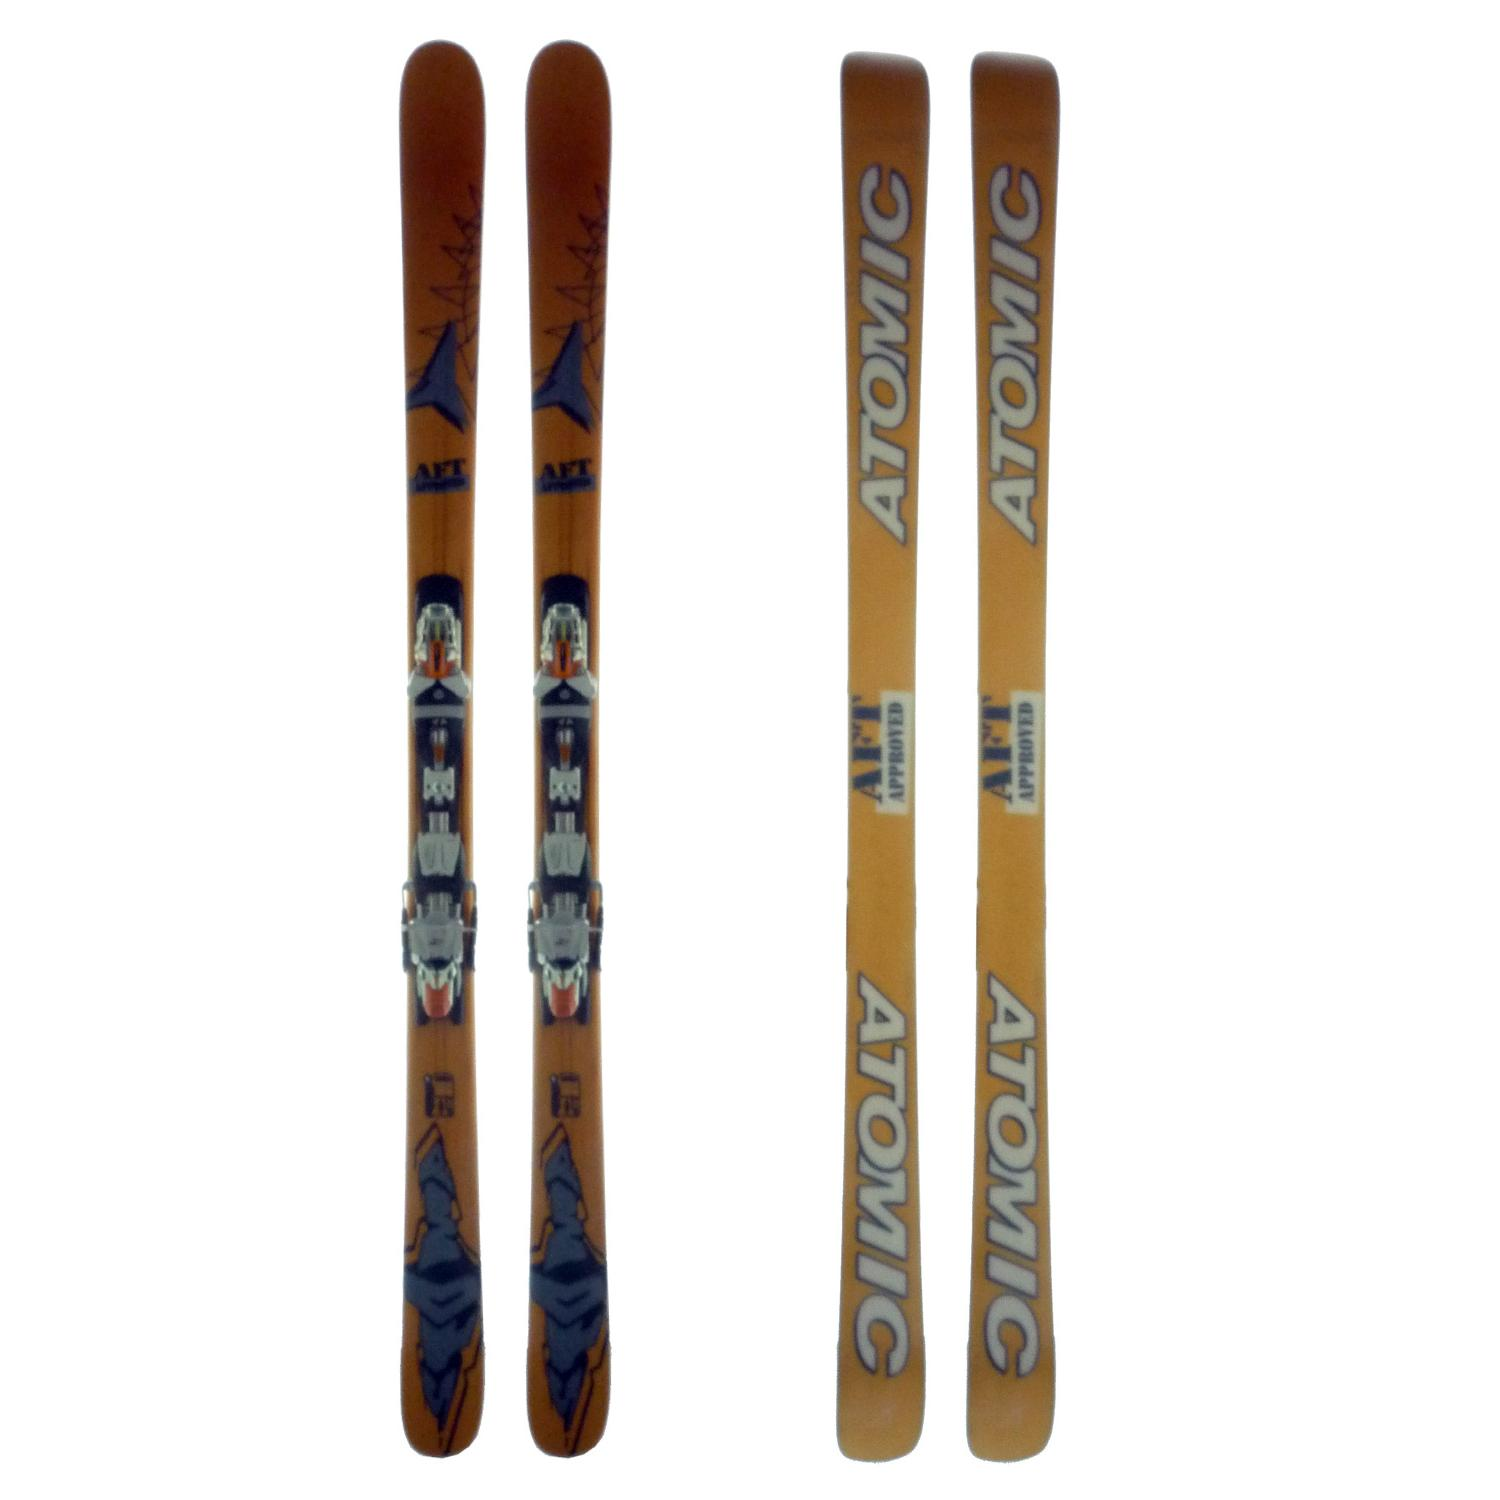 Atomic Stomp Skis + Bindings - Used 2003